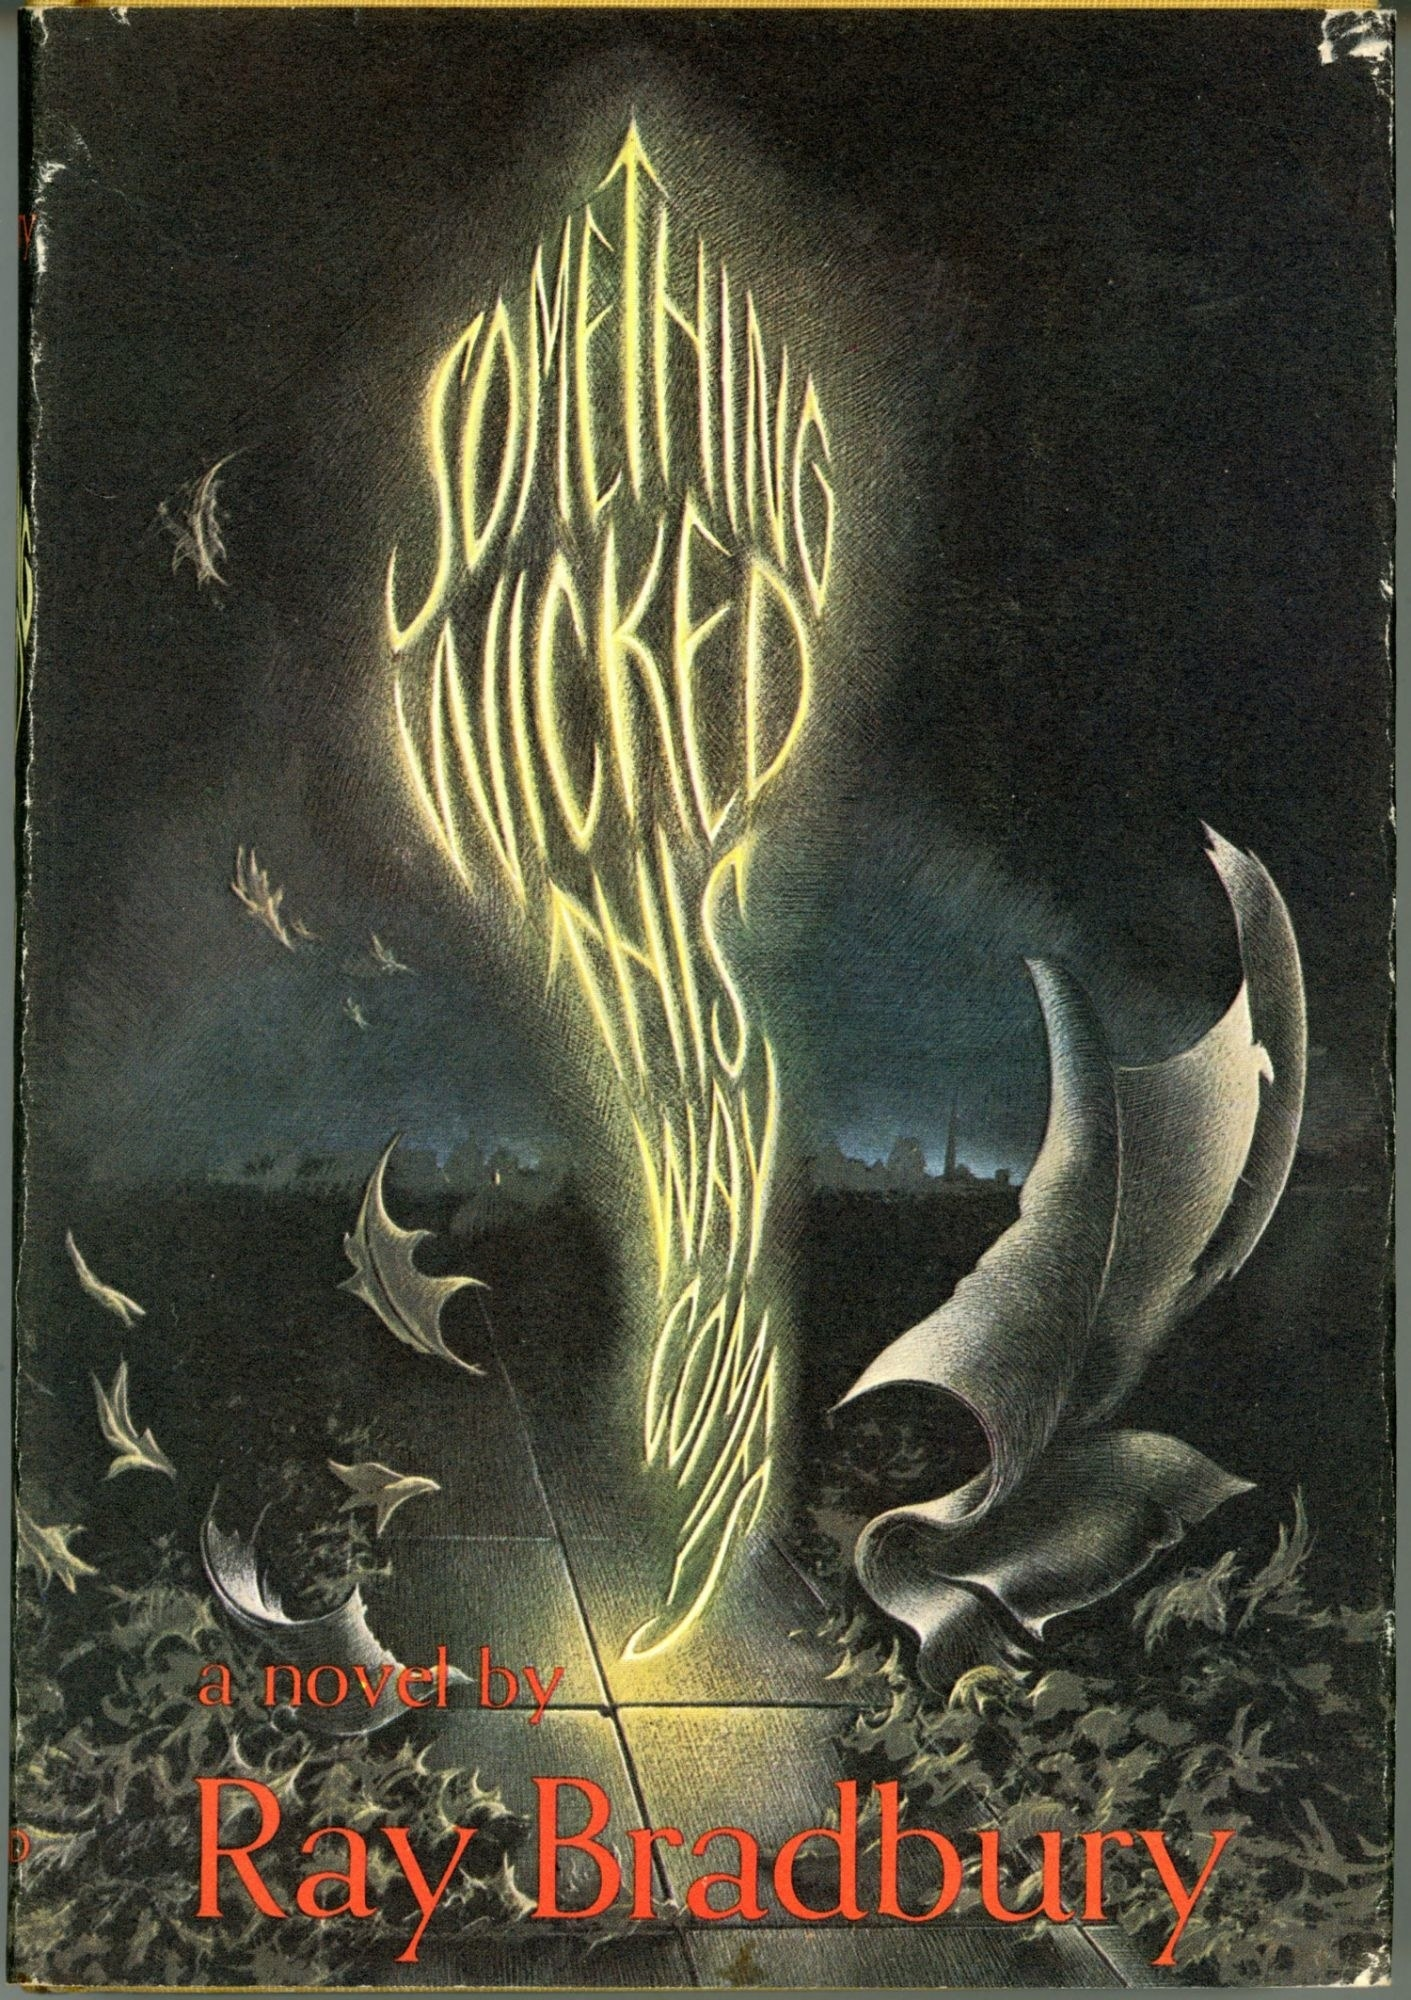 The book cover of Something Wicked This Way Comes by Ray Bradbury